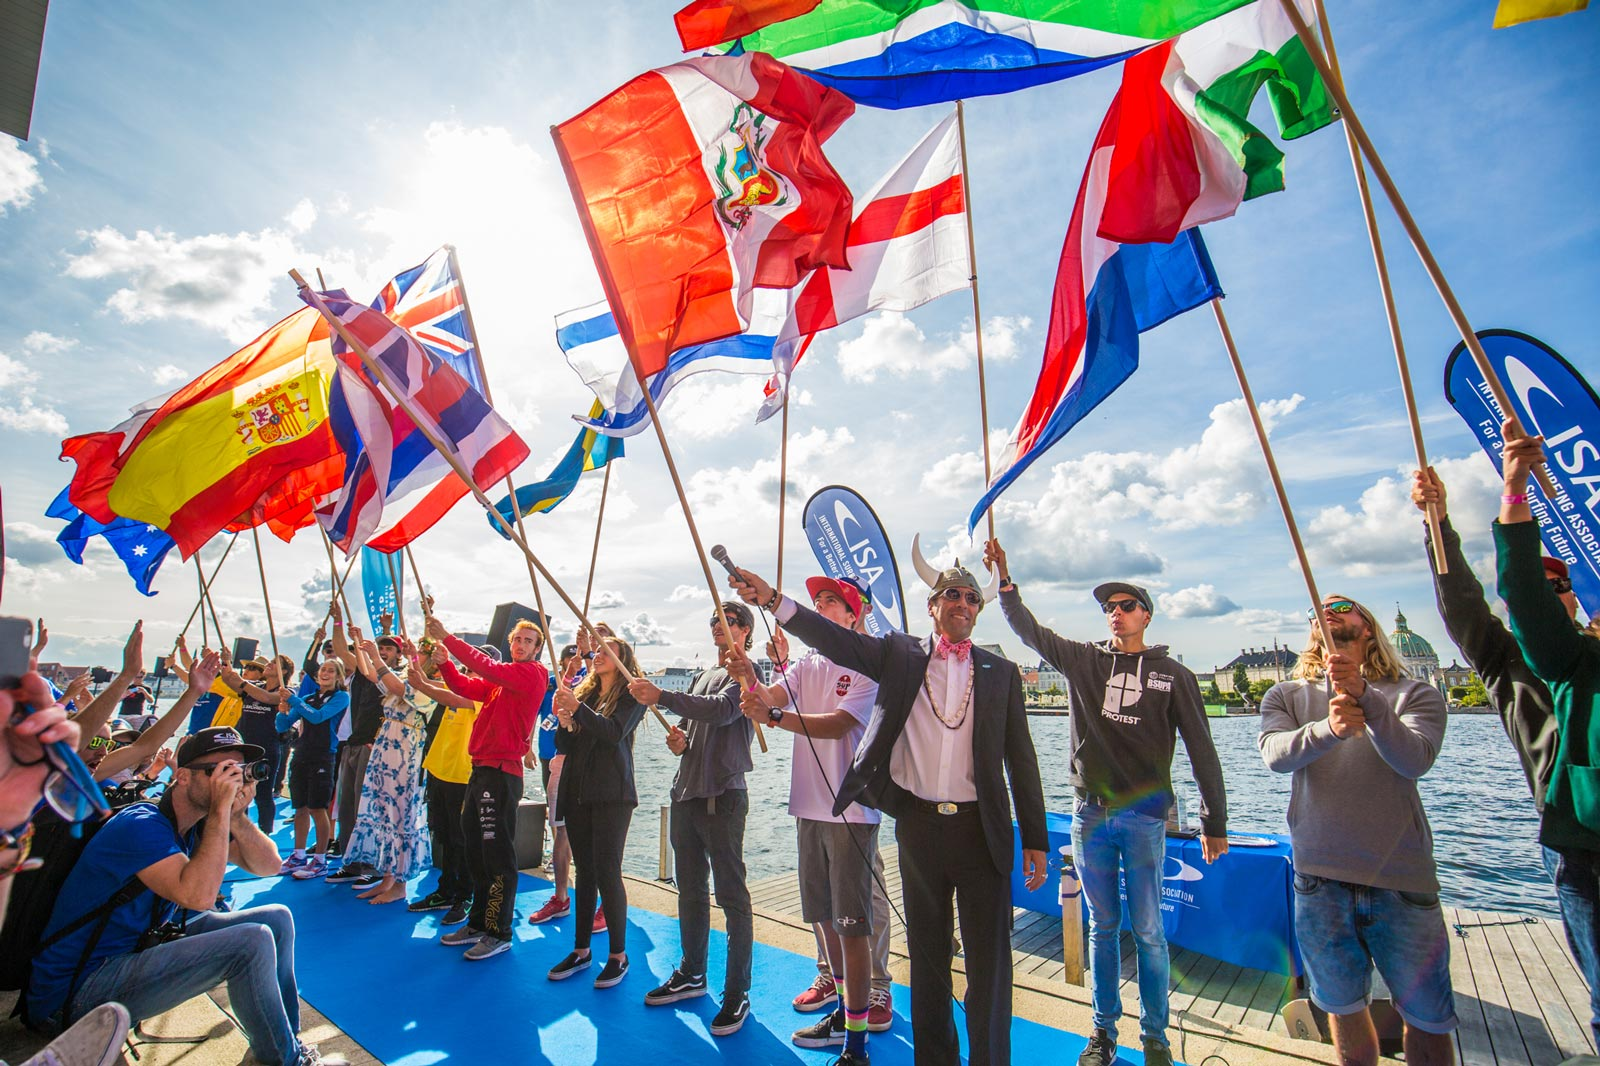 ISA-World-stand-up-paddleboarding-championship-Denmark-2017